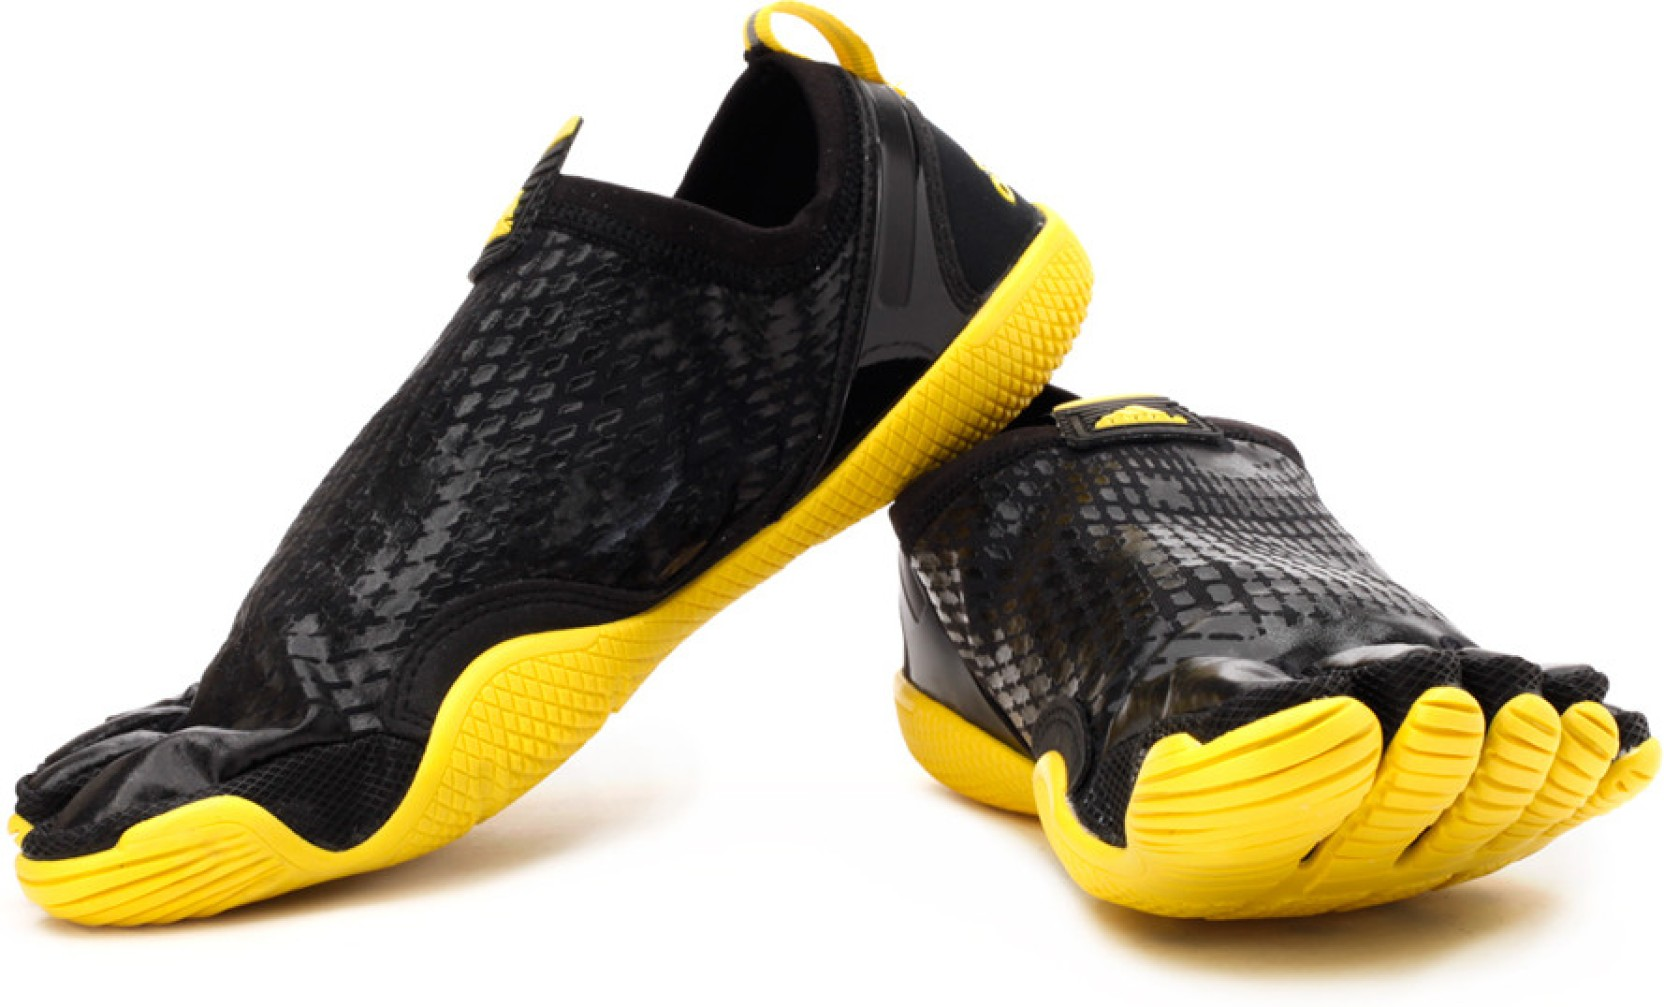 big sale 9a2c5 50ae0 ADIDAS Adipure Trainer 1.1 Training Shoes For Men (Black, Yellow)